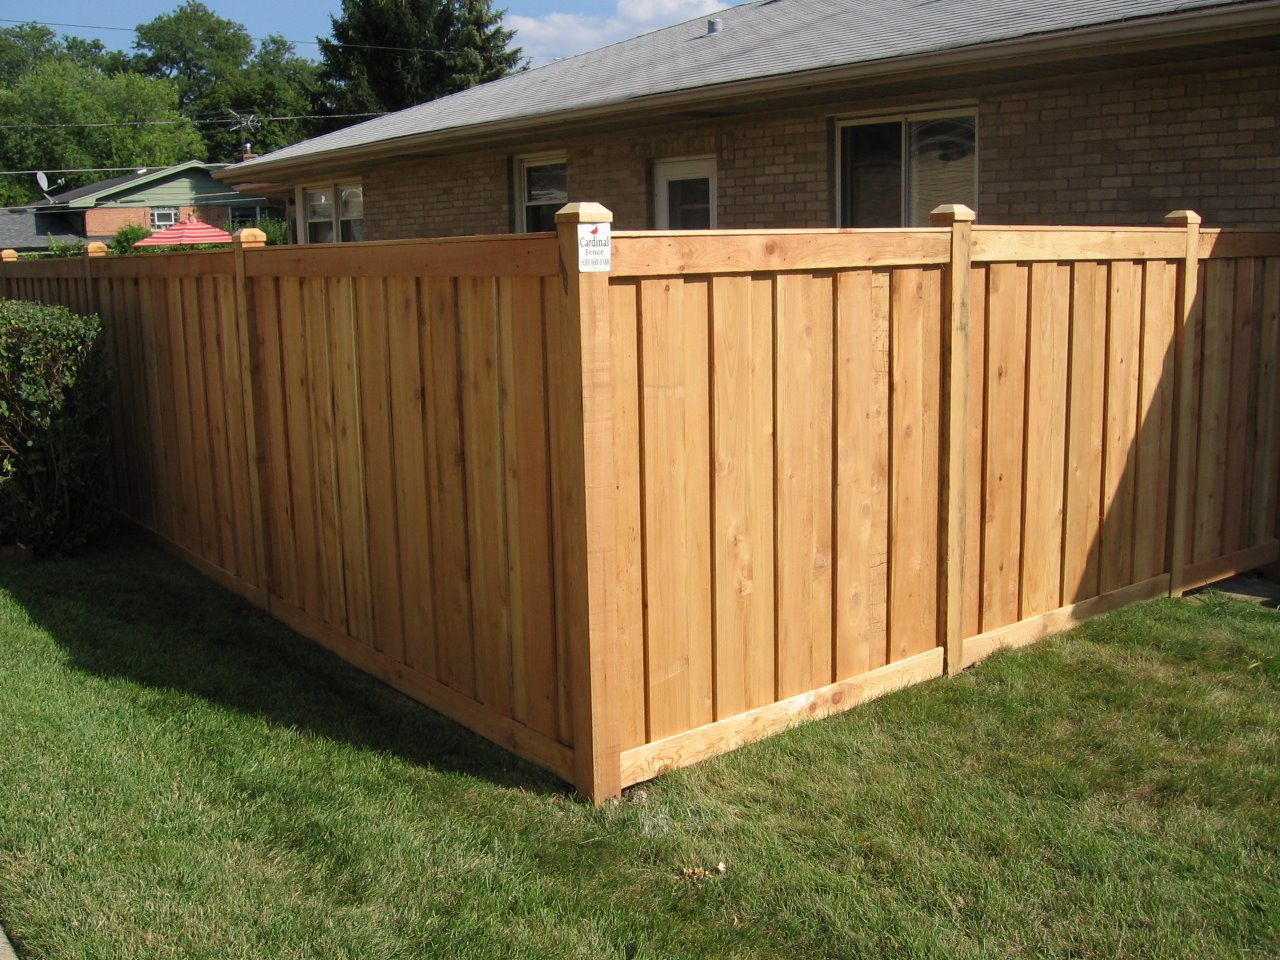 Picture of: Cedar Fencing From Cardinal Fence And Supply In Bensenville